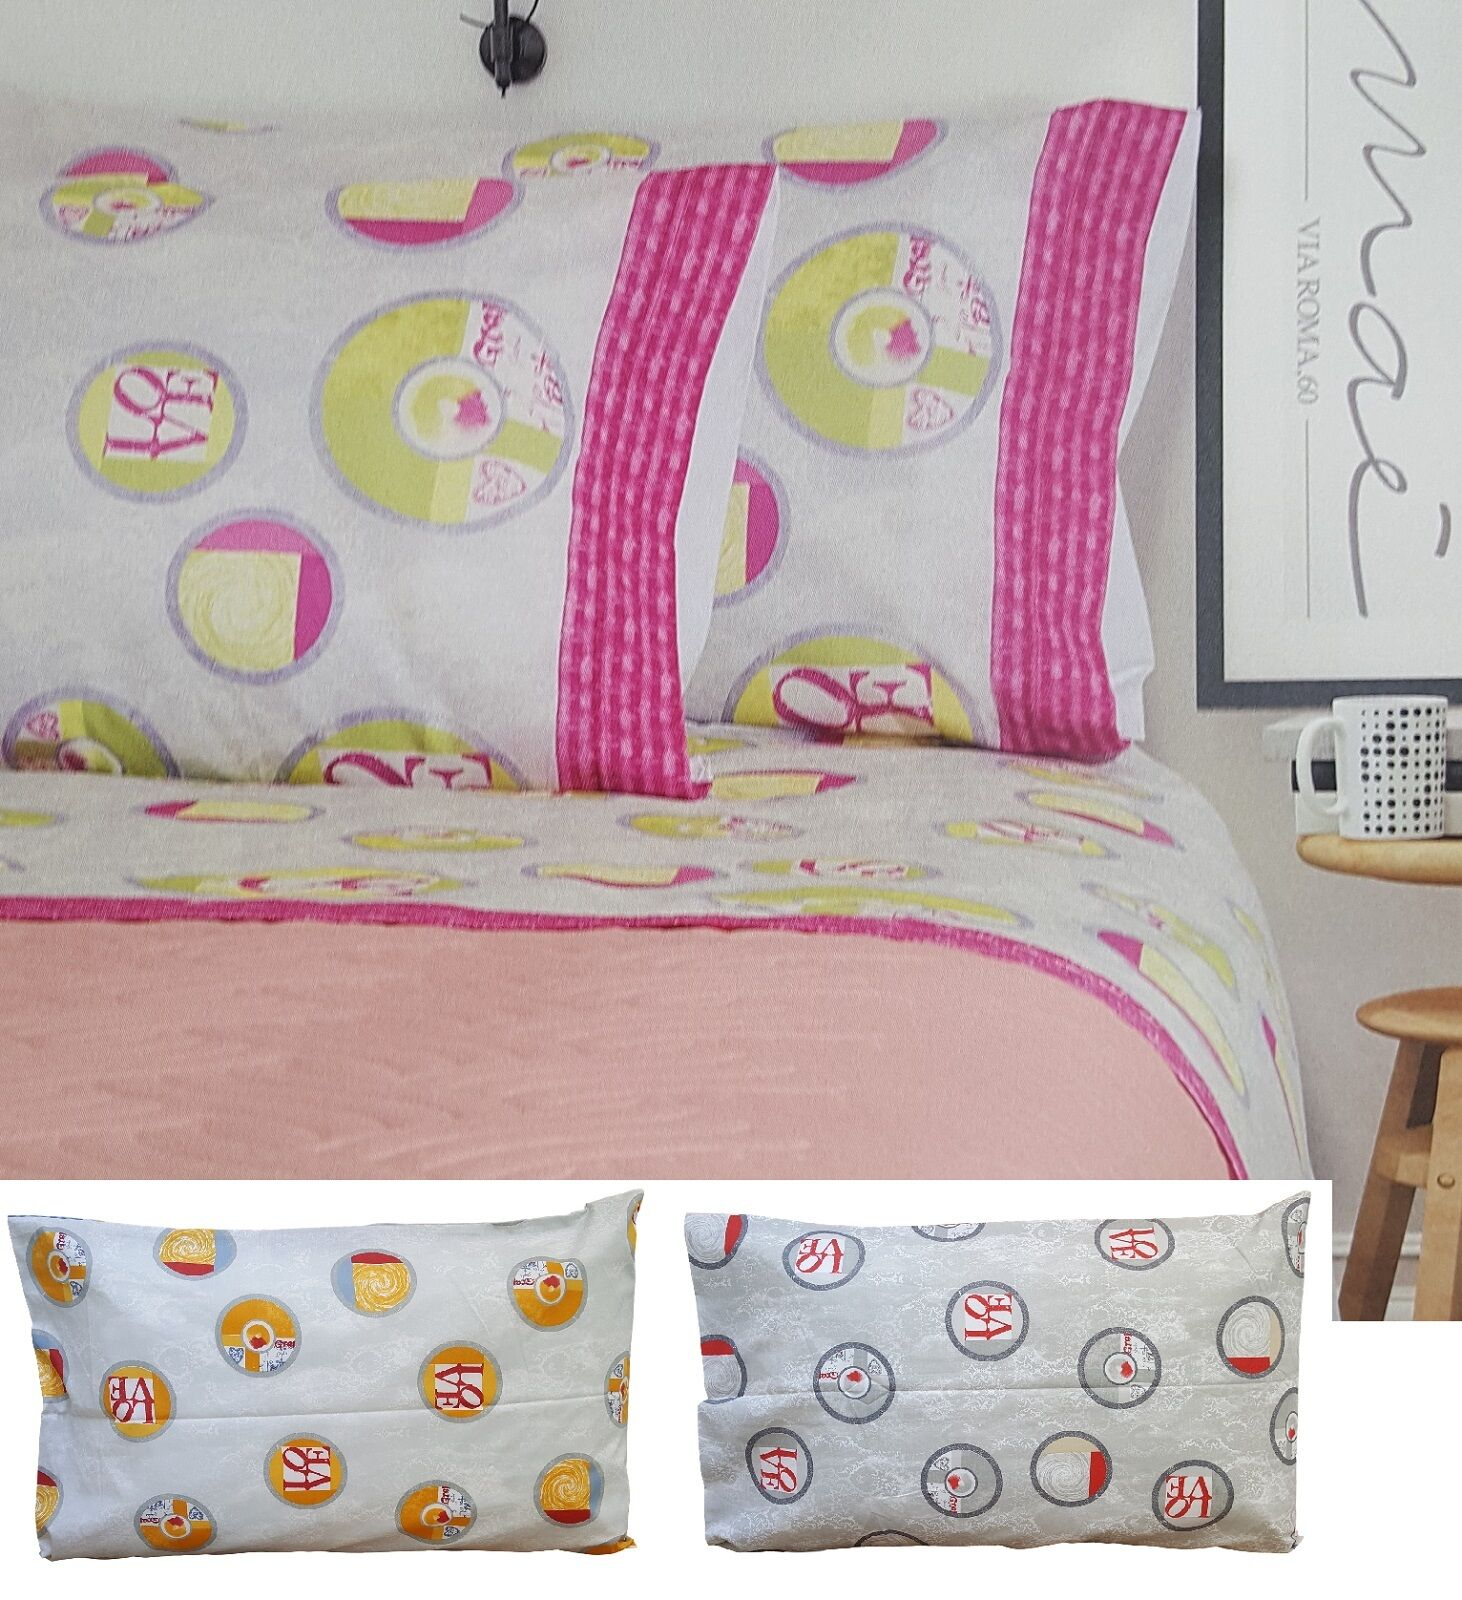 St Sheets MAE,' FORCE. Double, 2 squares 100% Cotton 150 Wires INCH